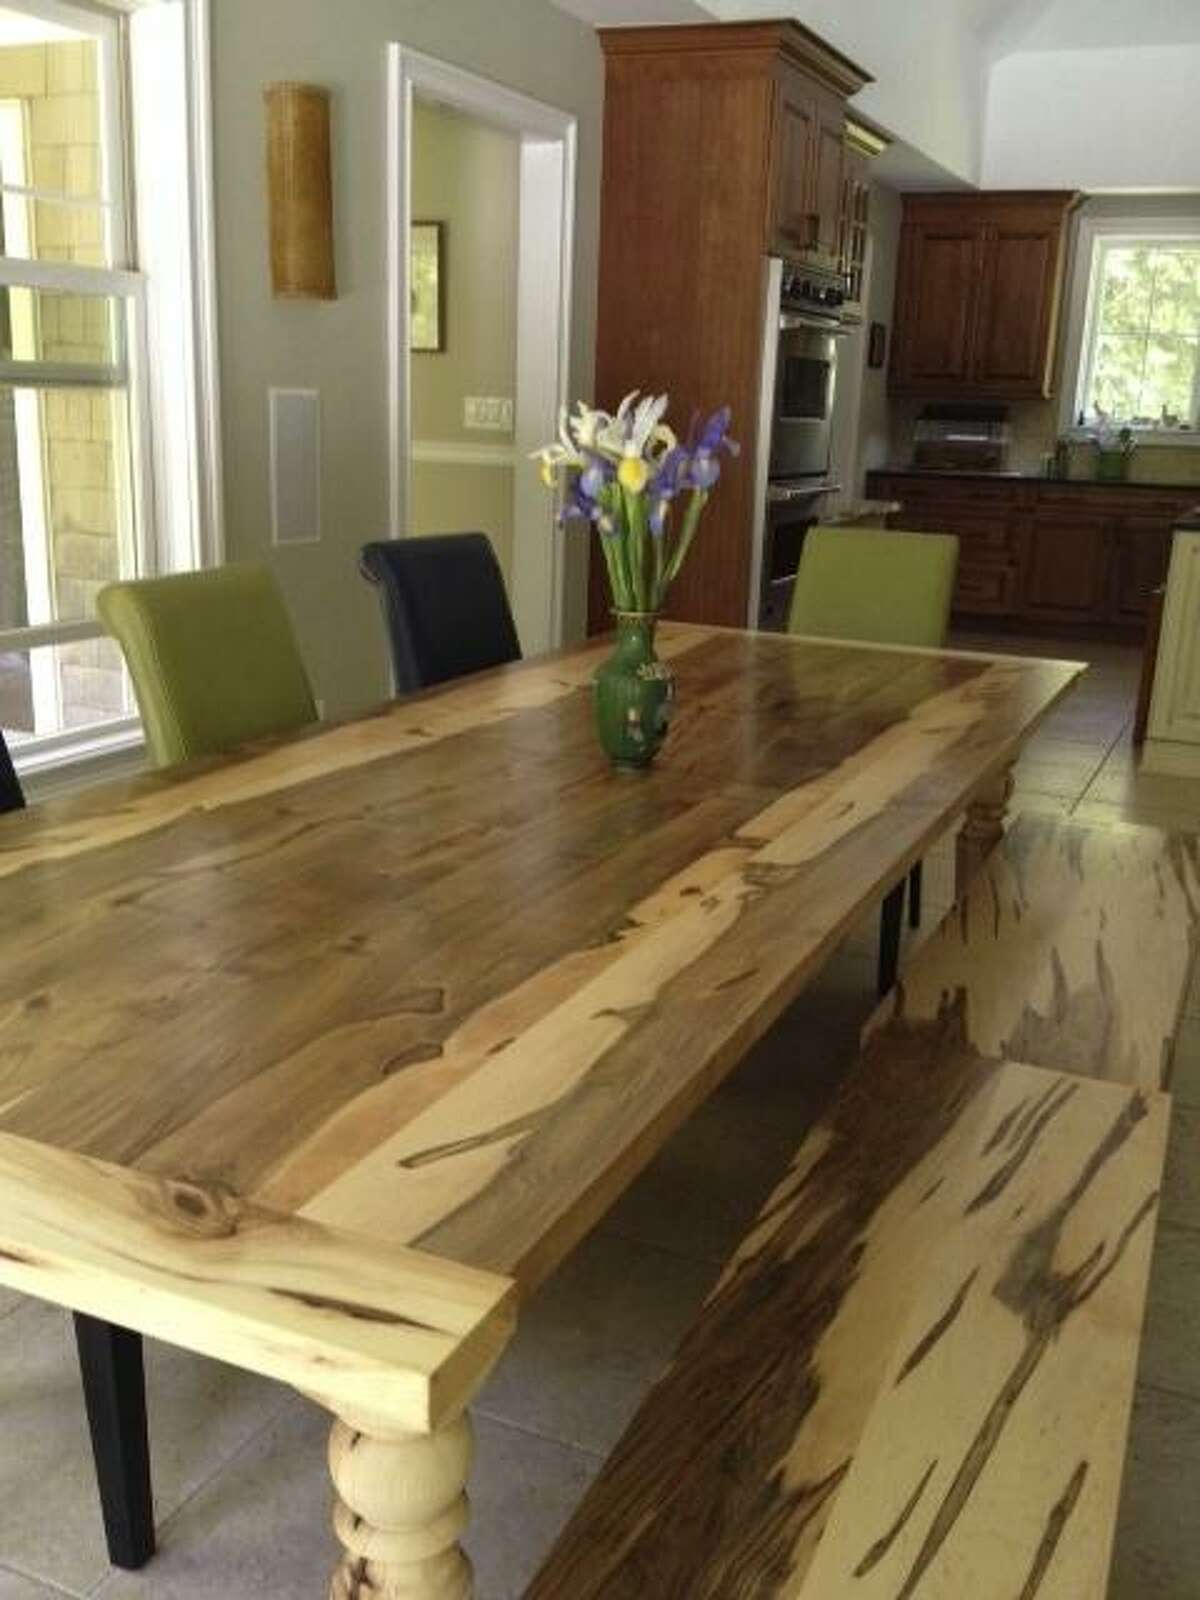 A farm-style table made by City Bench for a Woodbridge family from a tree that fell on their property.